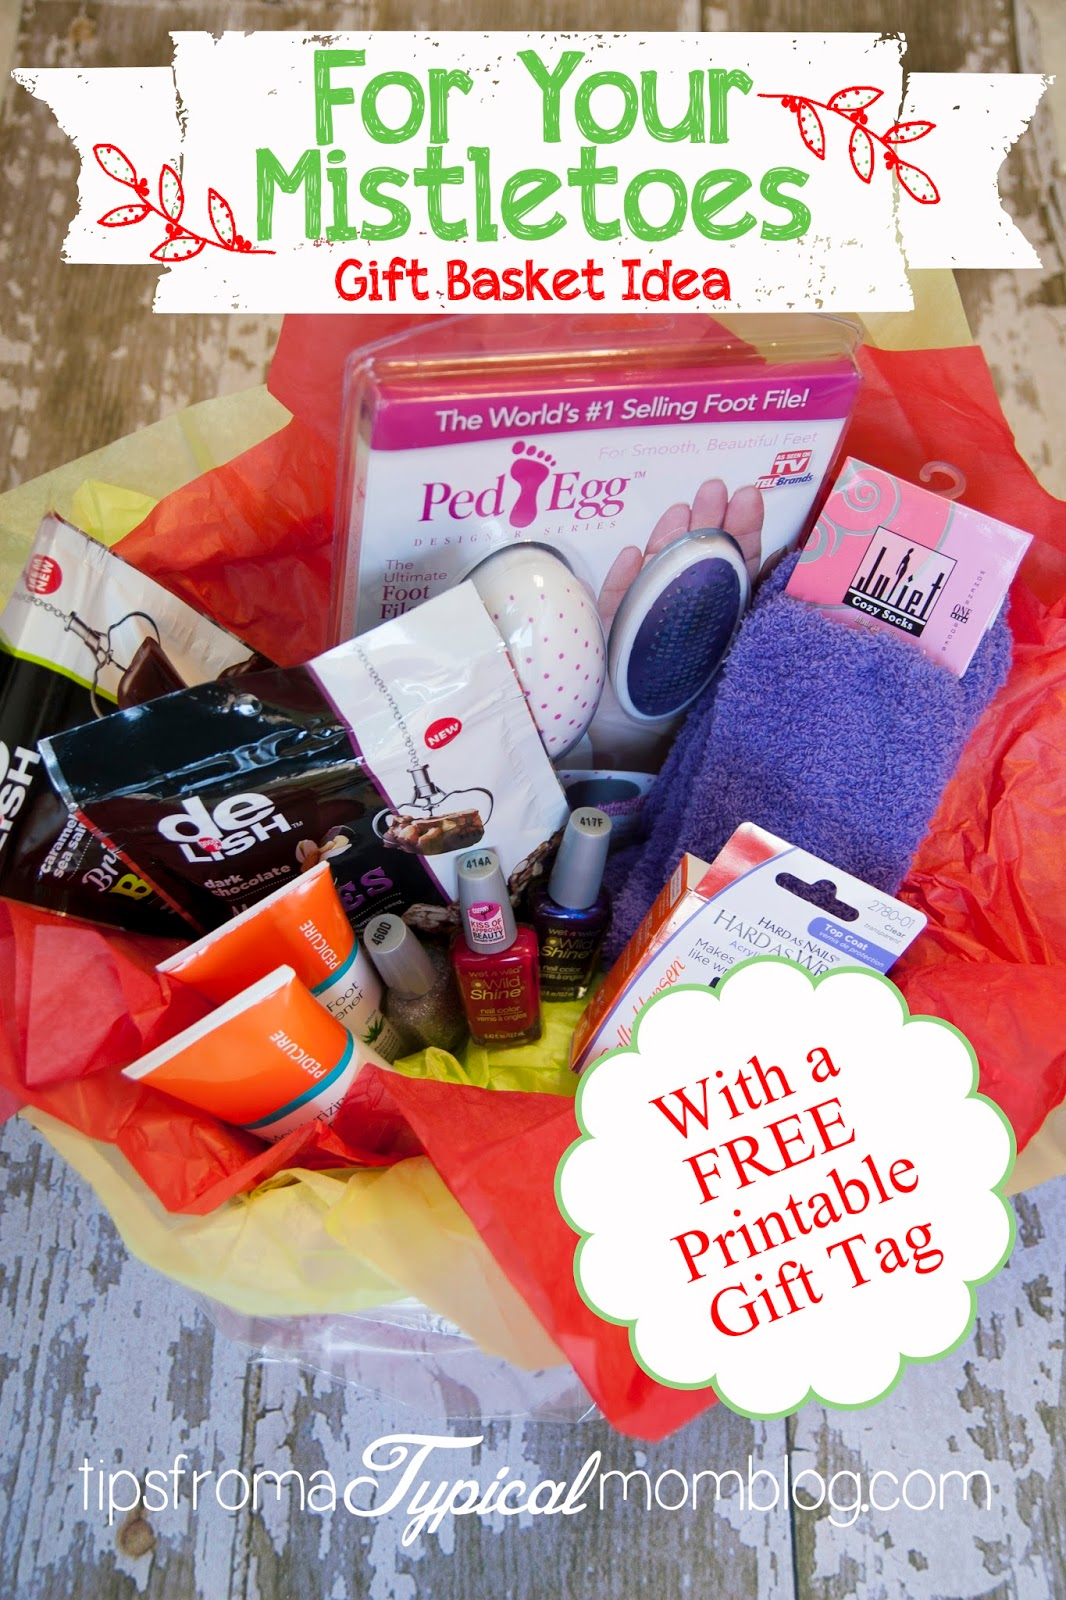 Last Minute Christmas Gifts For Secret Santa For Your Mistletoes